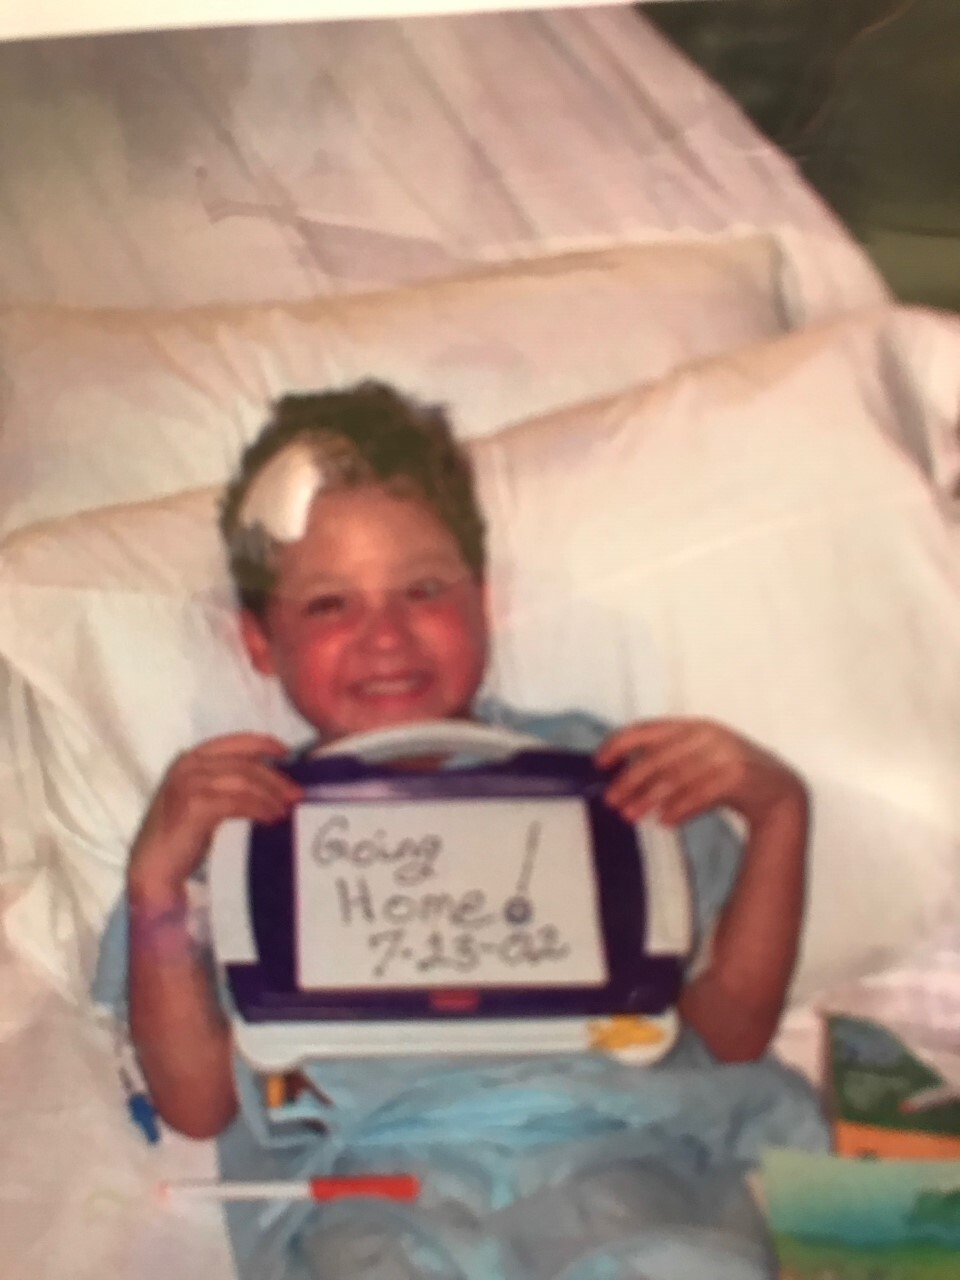 Camden Garcia at 5 years old in the hopsital